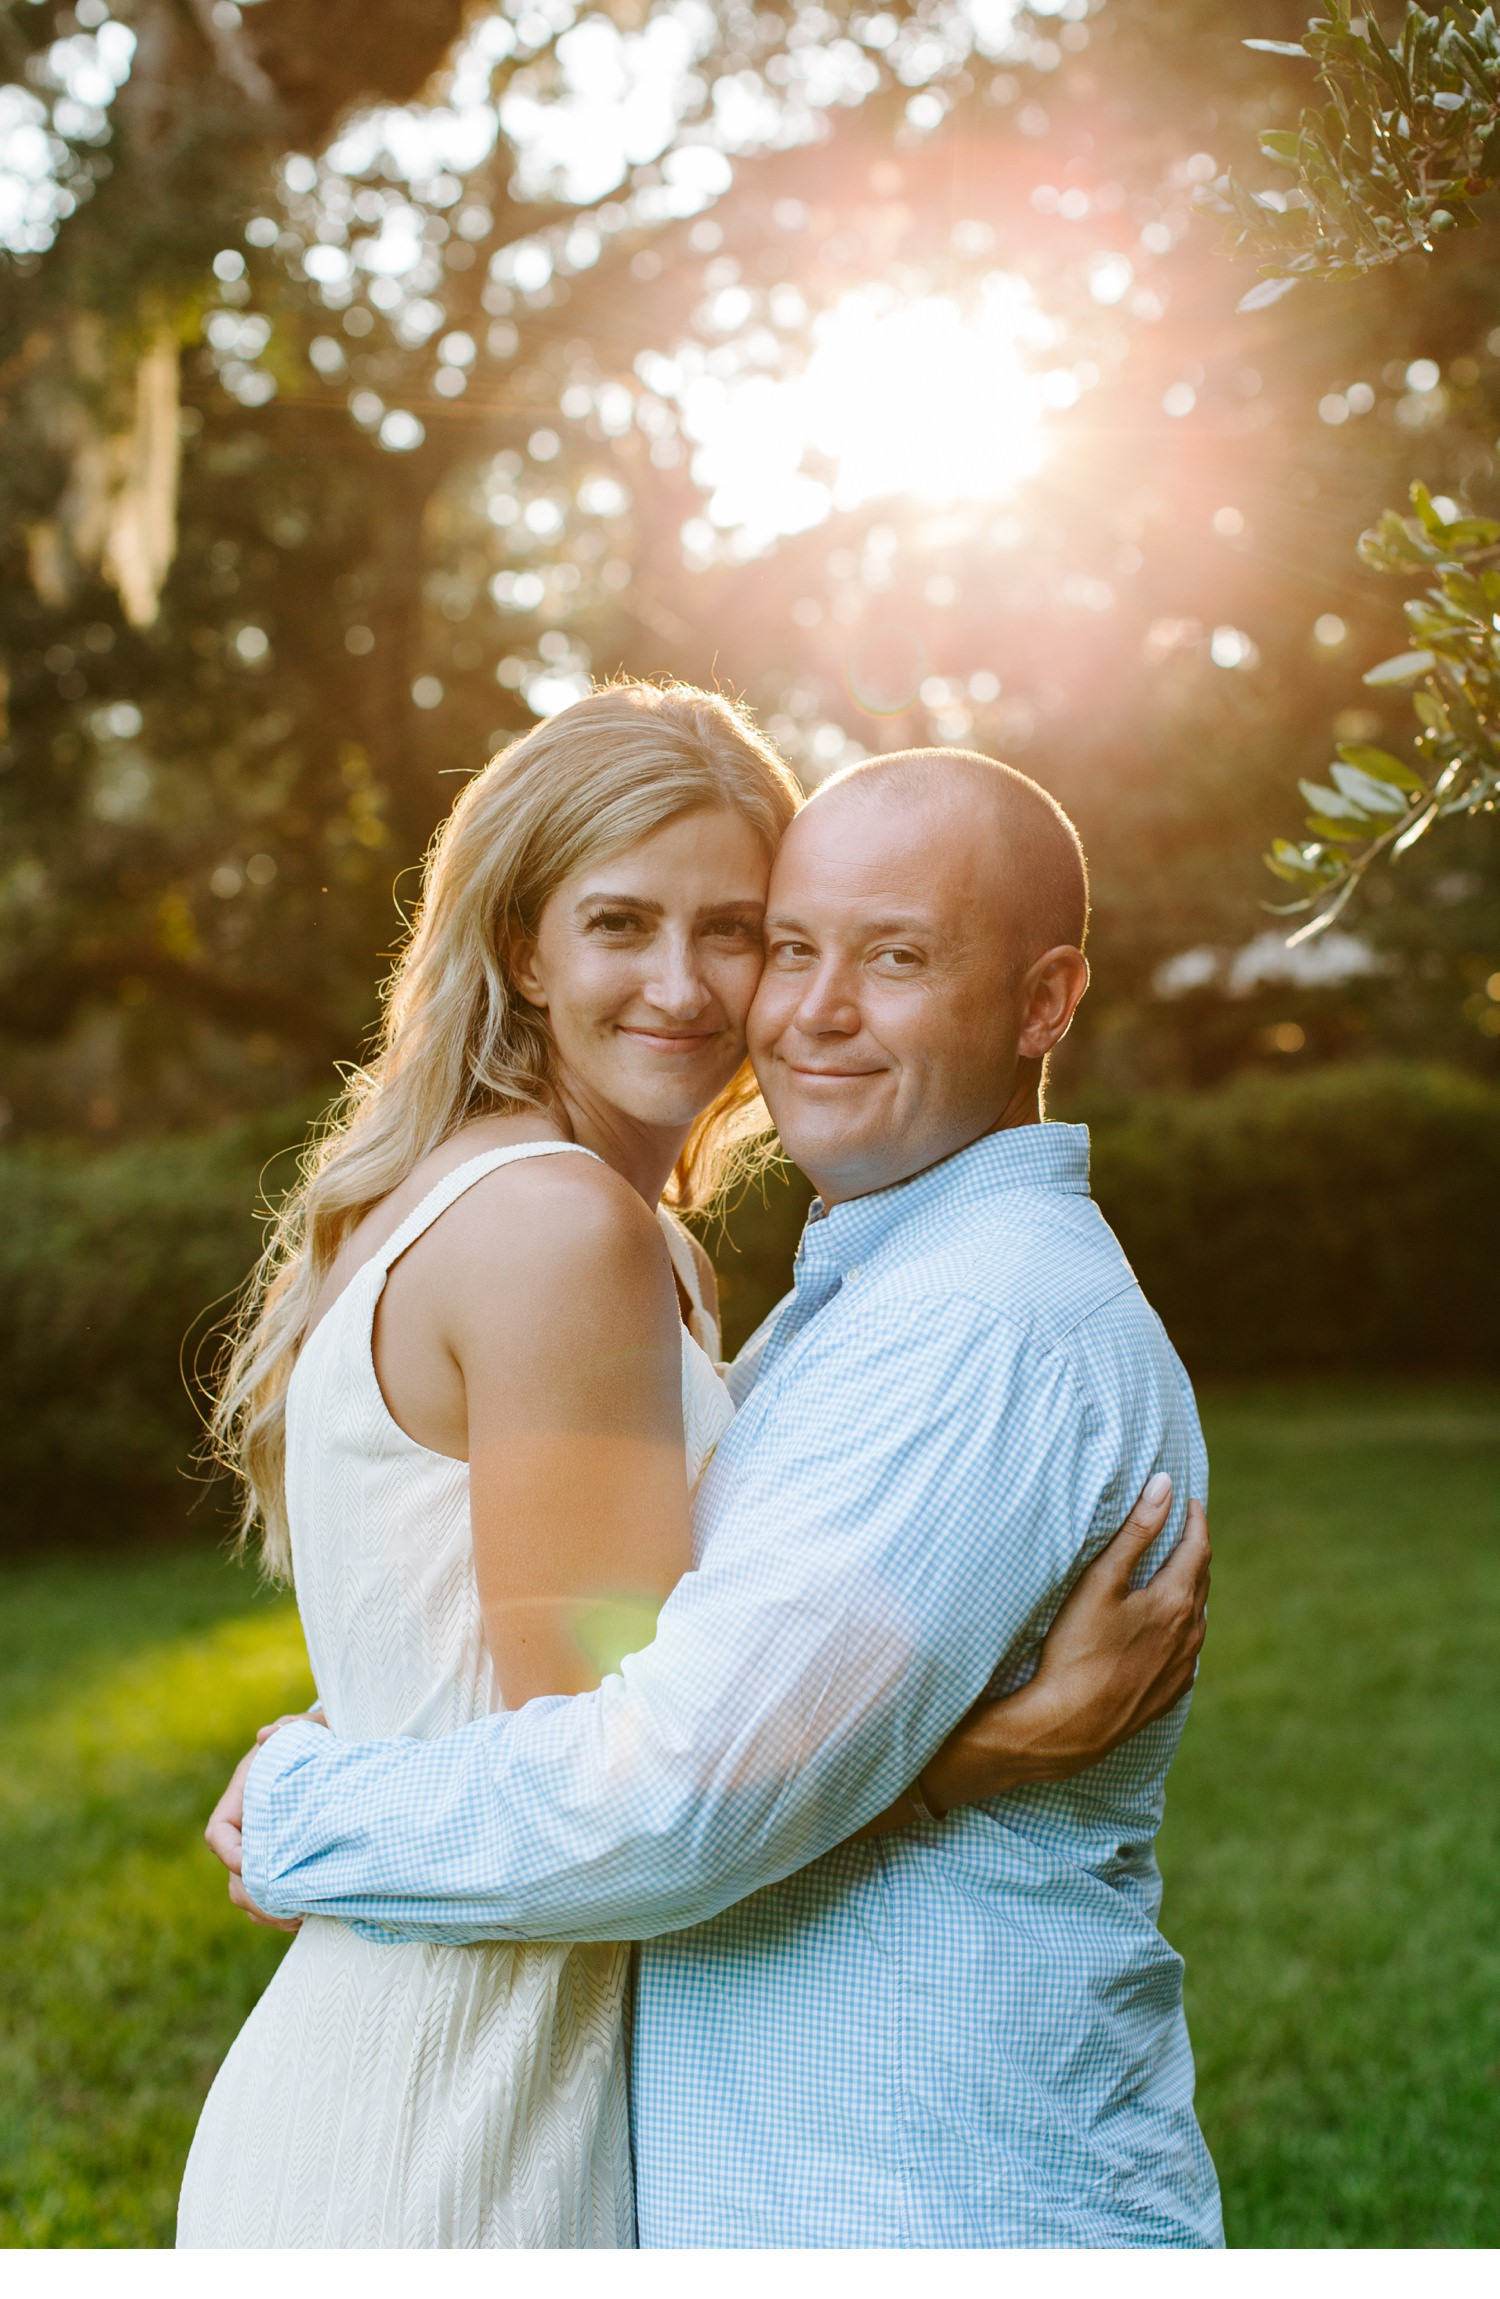 eden-gardens-state-park-engagement-session-stacie-and-jacob-5.jpg